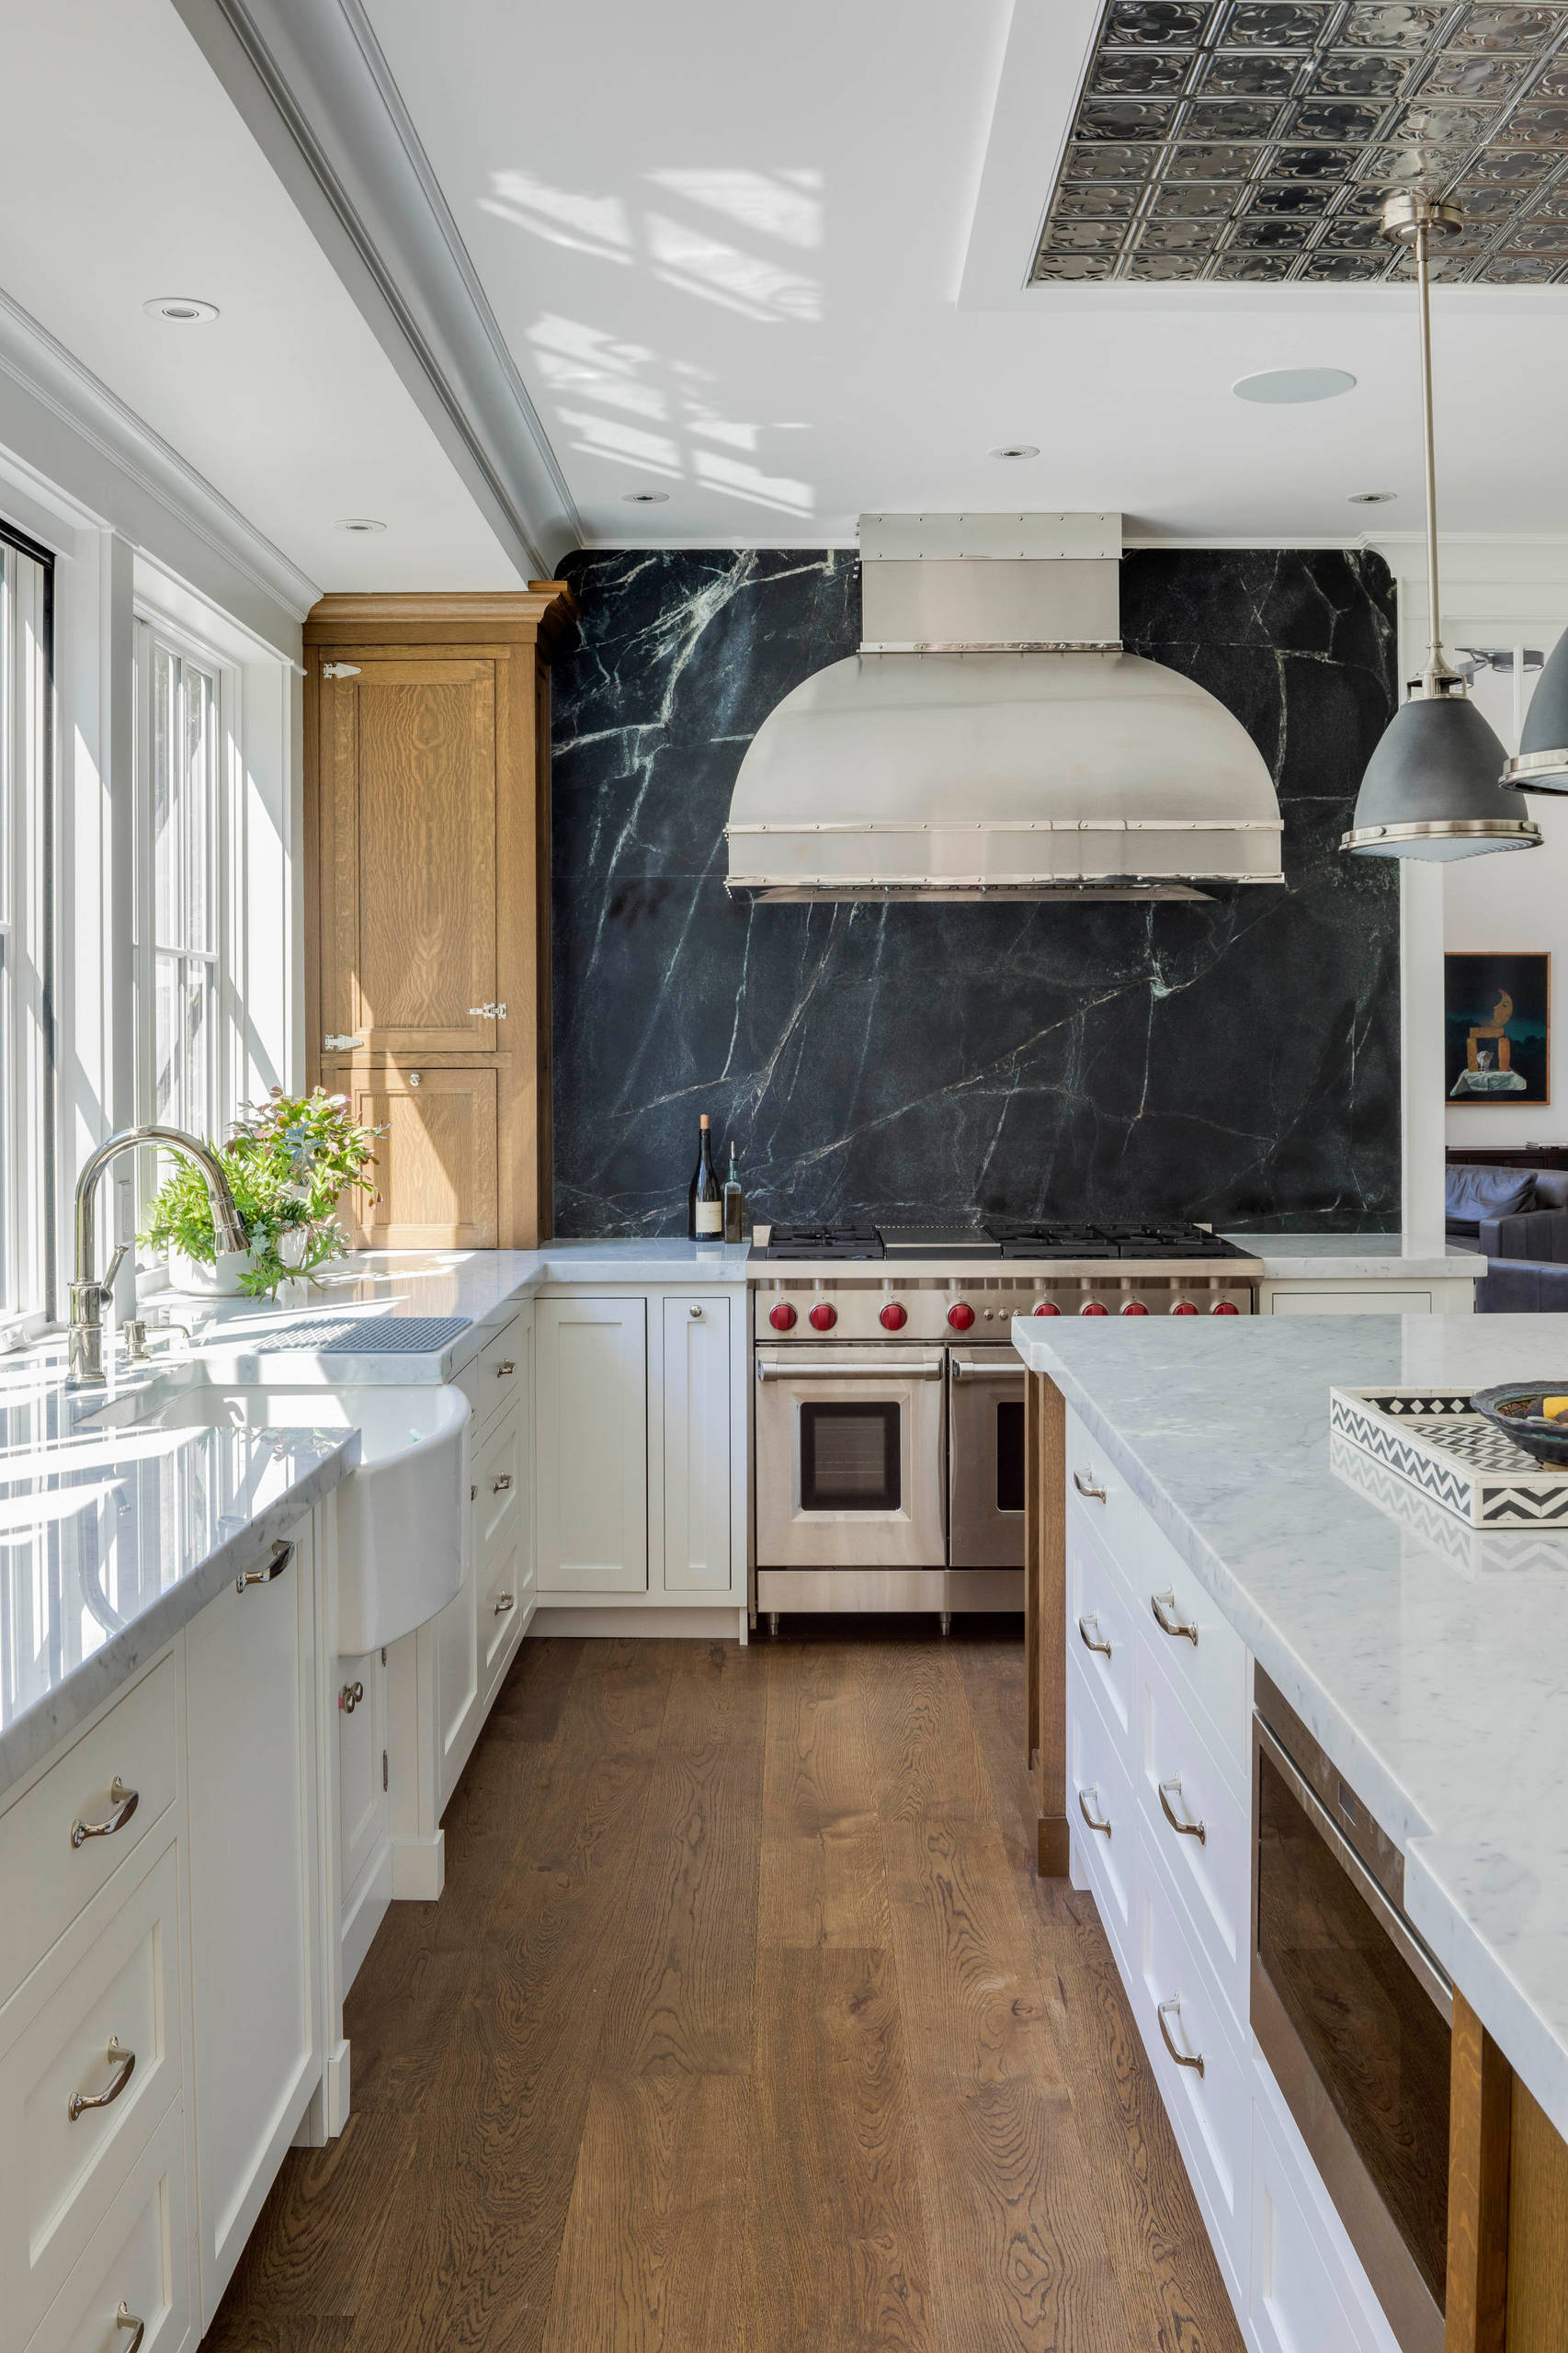 75 Beautiful Kitchen With Black Backsplash Pictures Ideas December 2020 Houzz